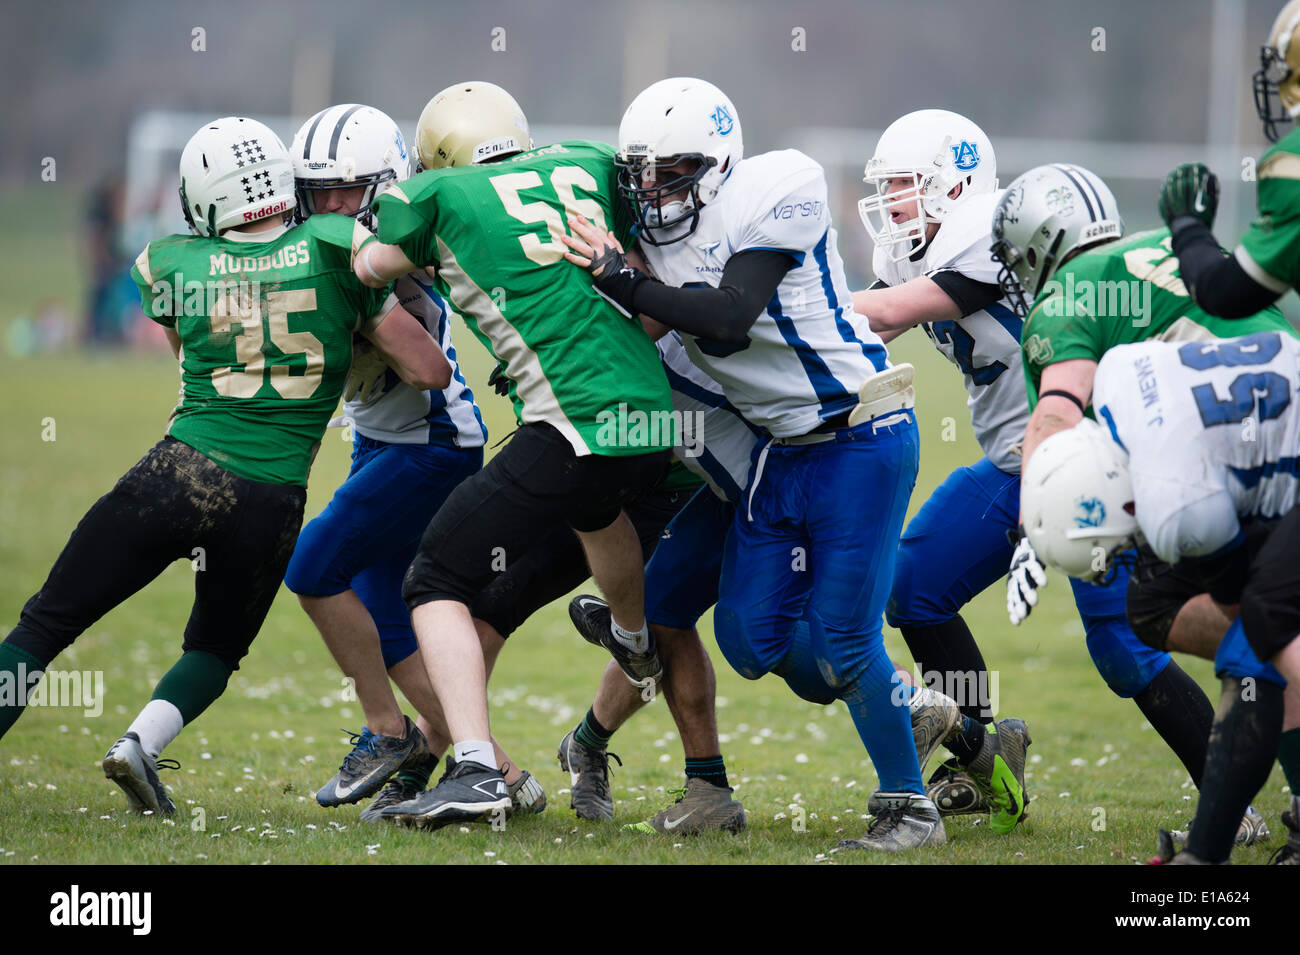 Tarannau, Aberystwyth University american football team (in white) playing a league game Wales UK - Stock Image